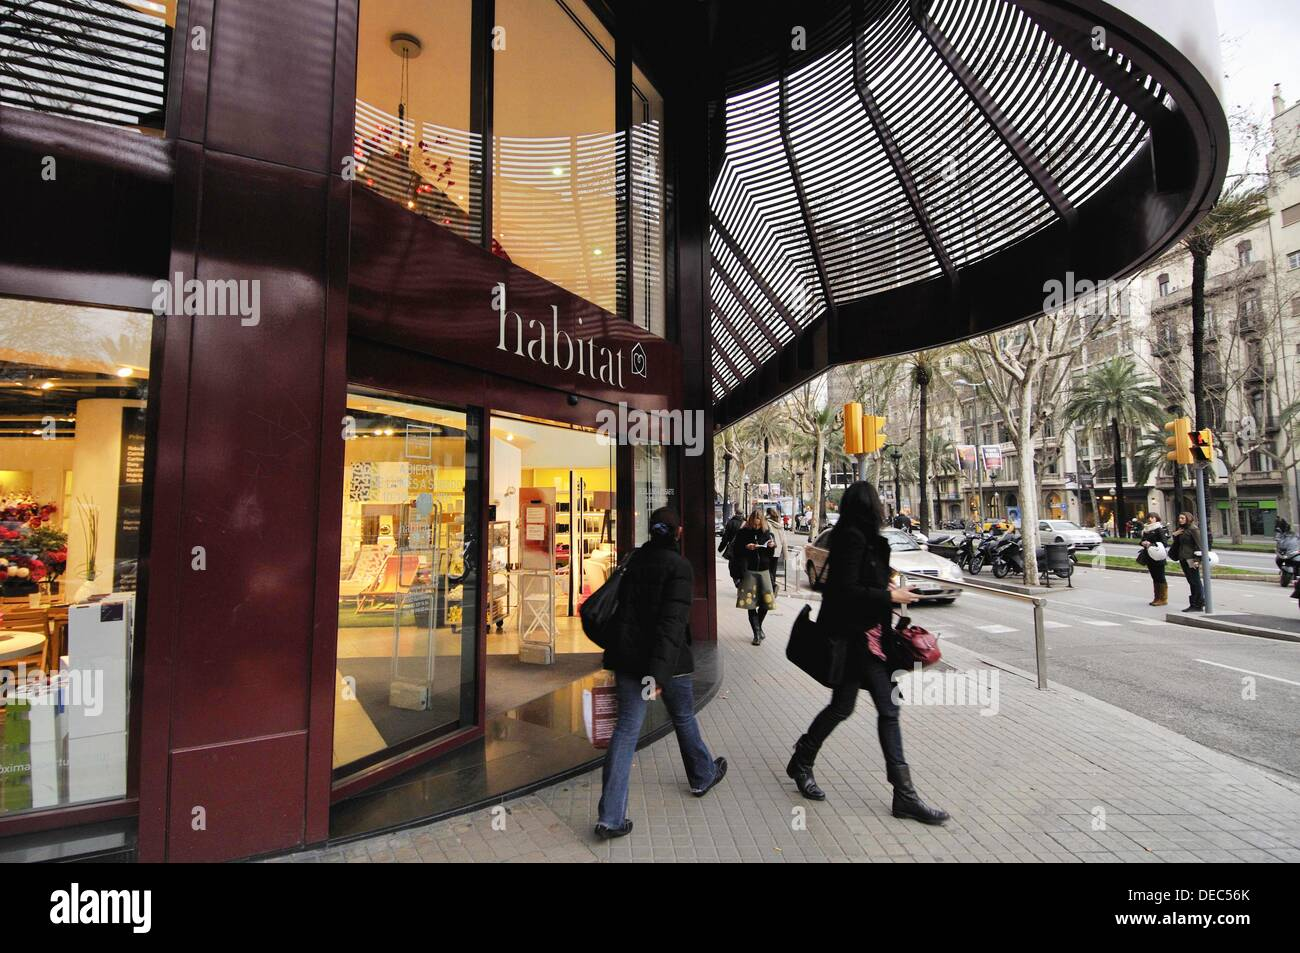 habitat store at avinguda diagonal barcelona catalonia spain stock photo